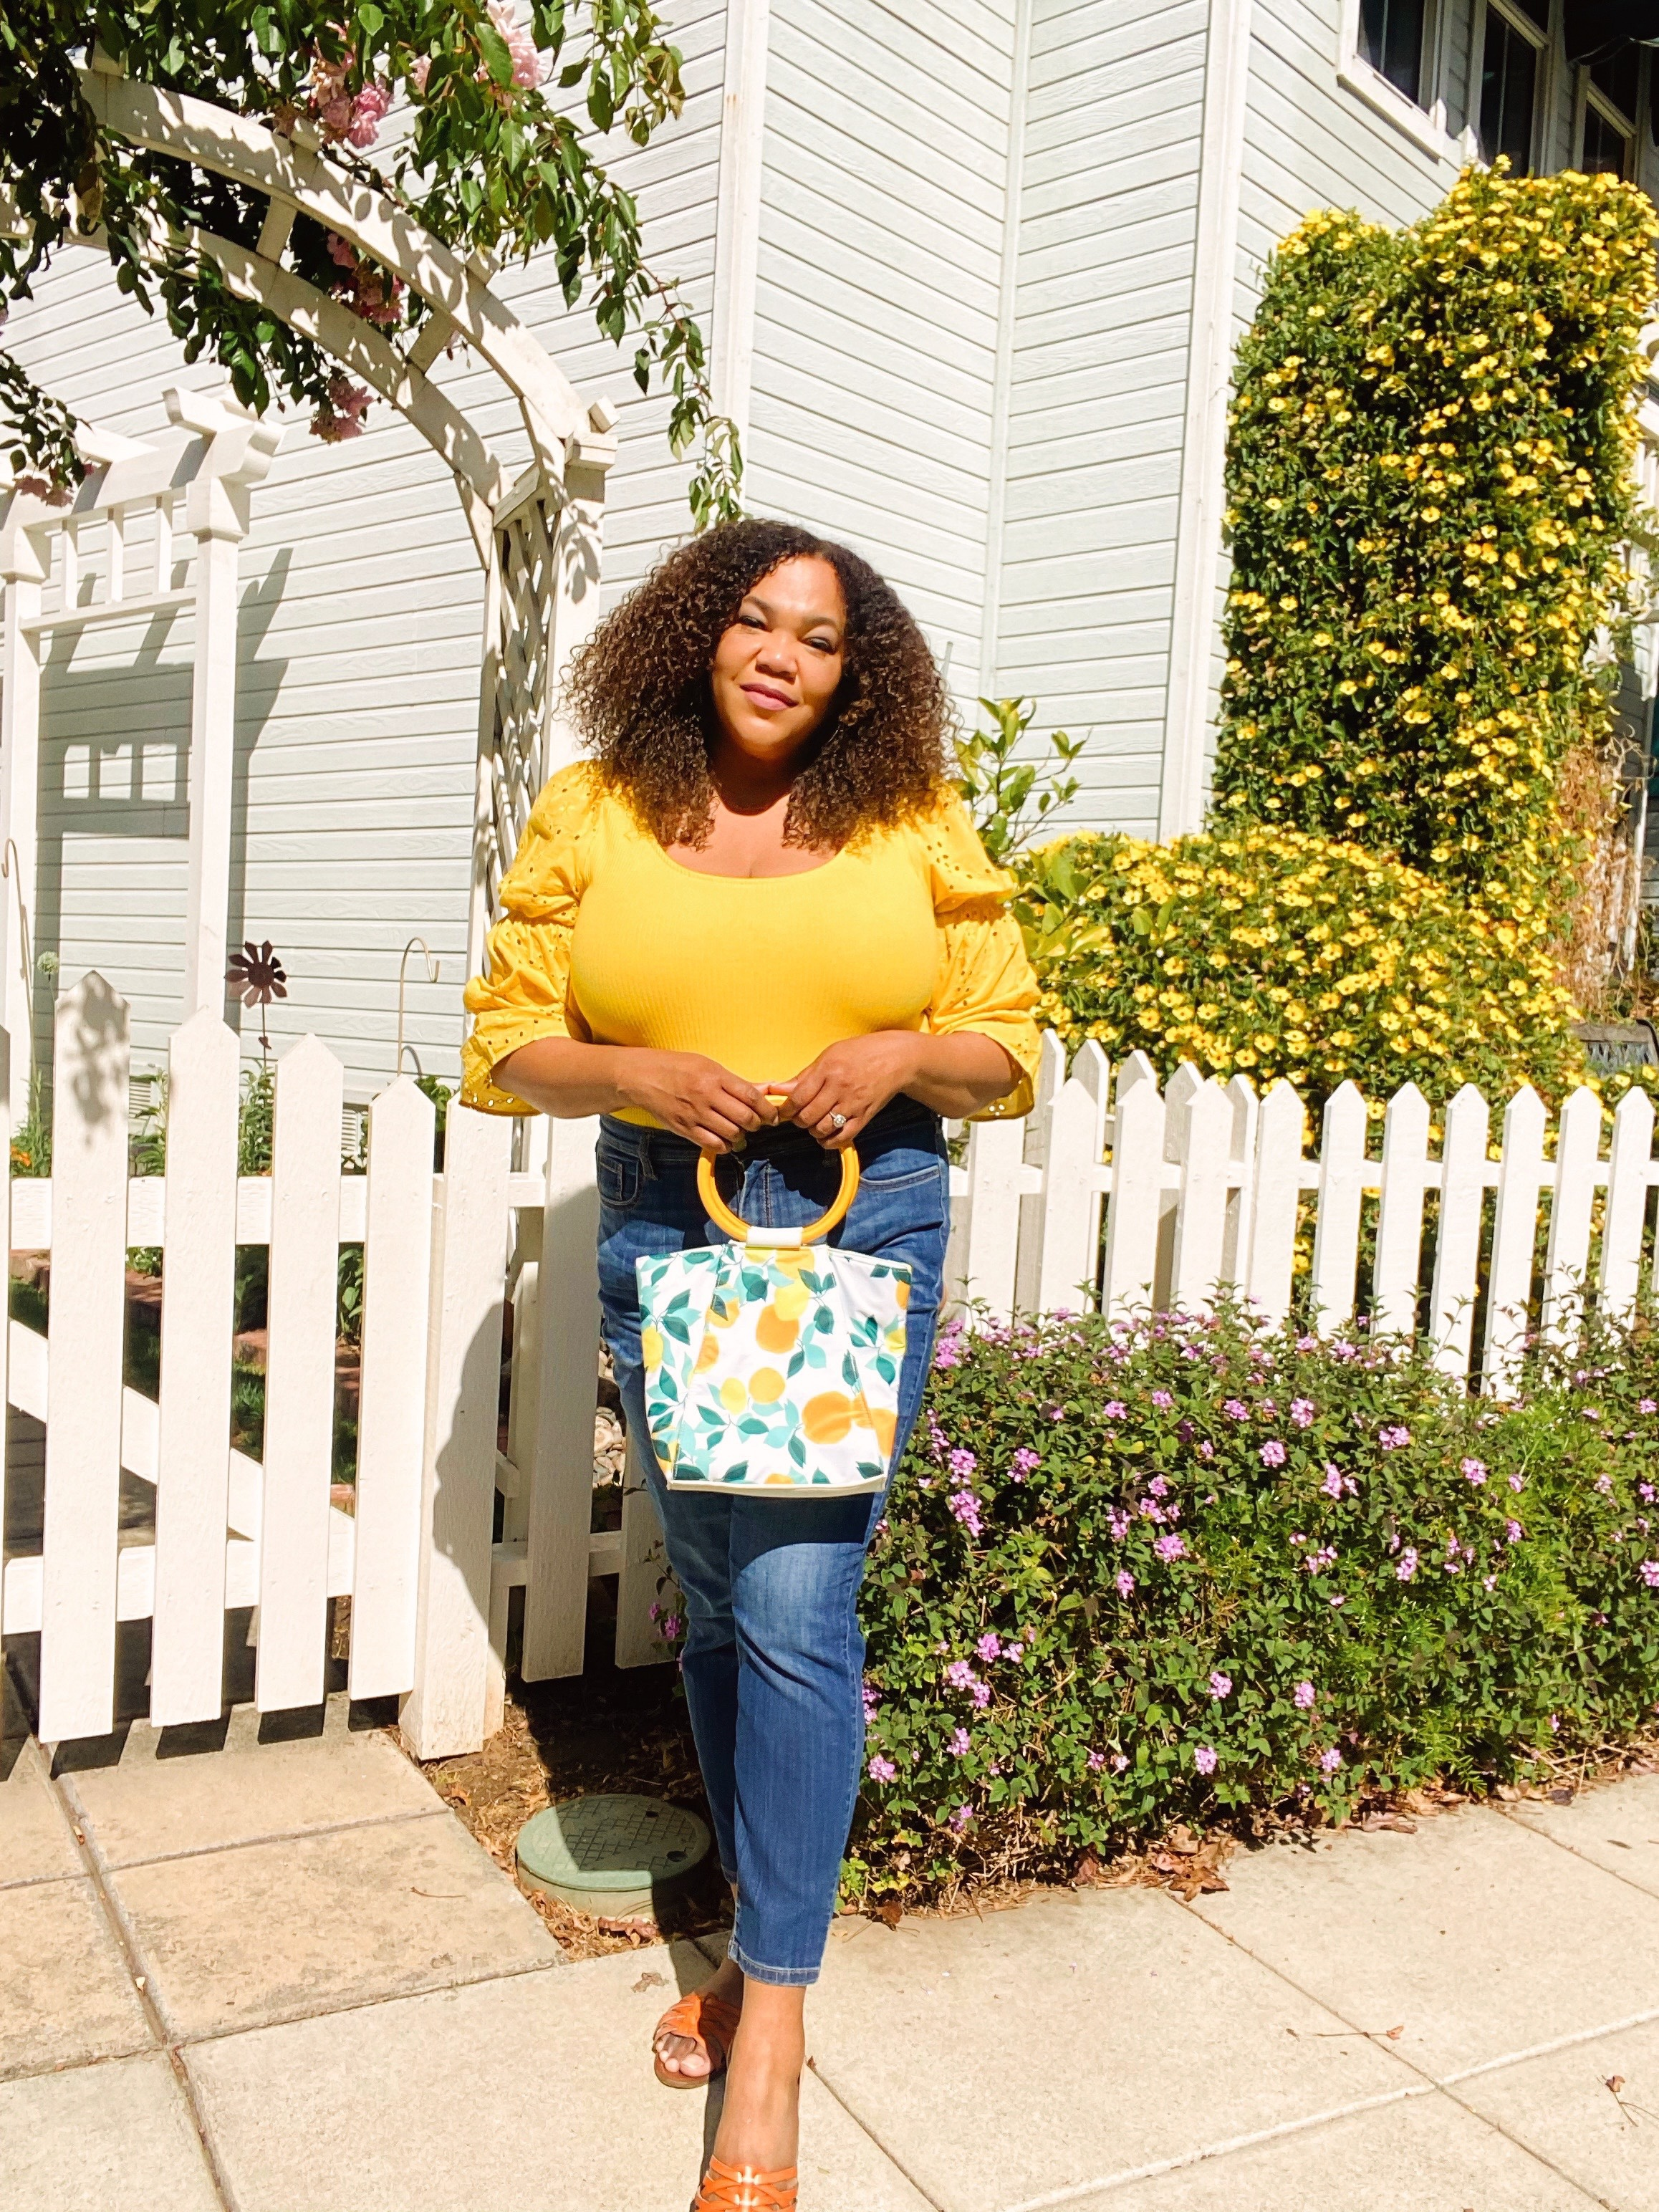 A black woman in a yellow top